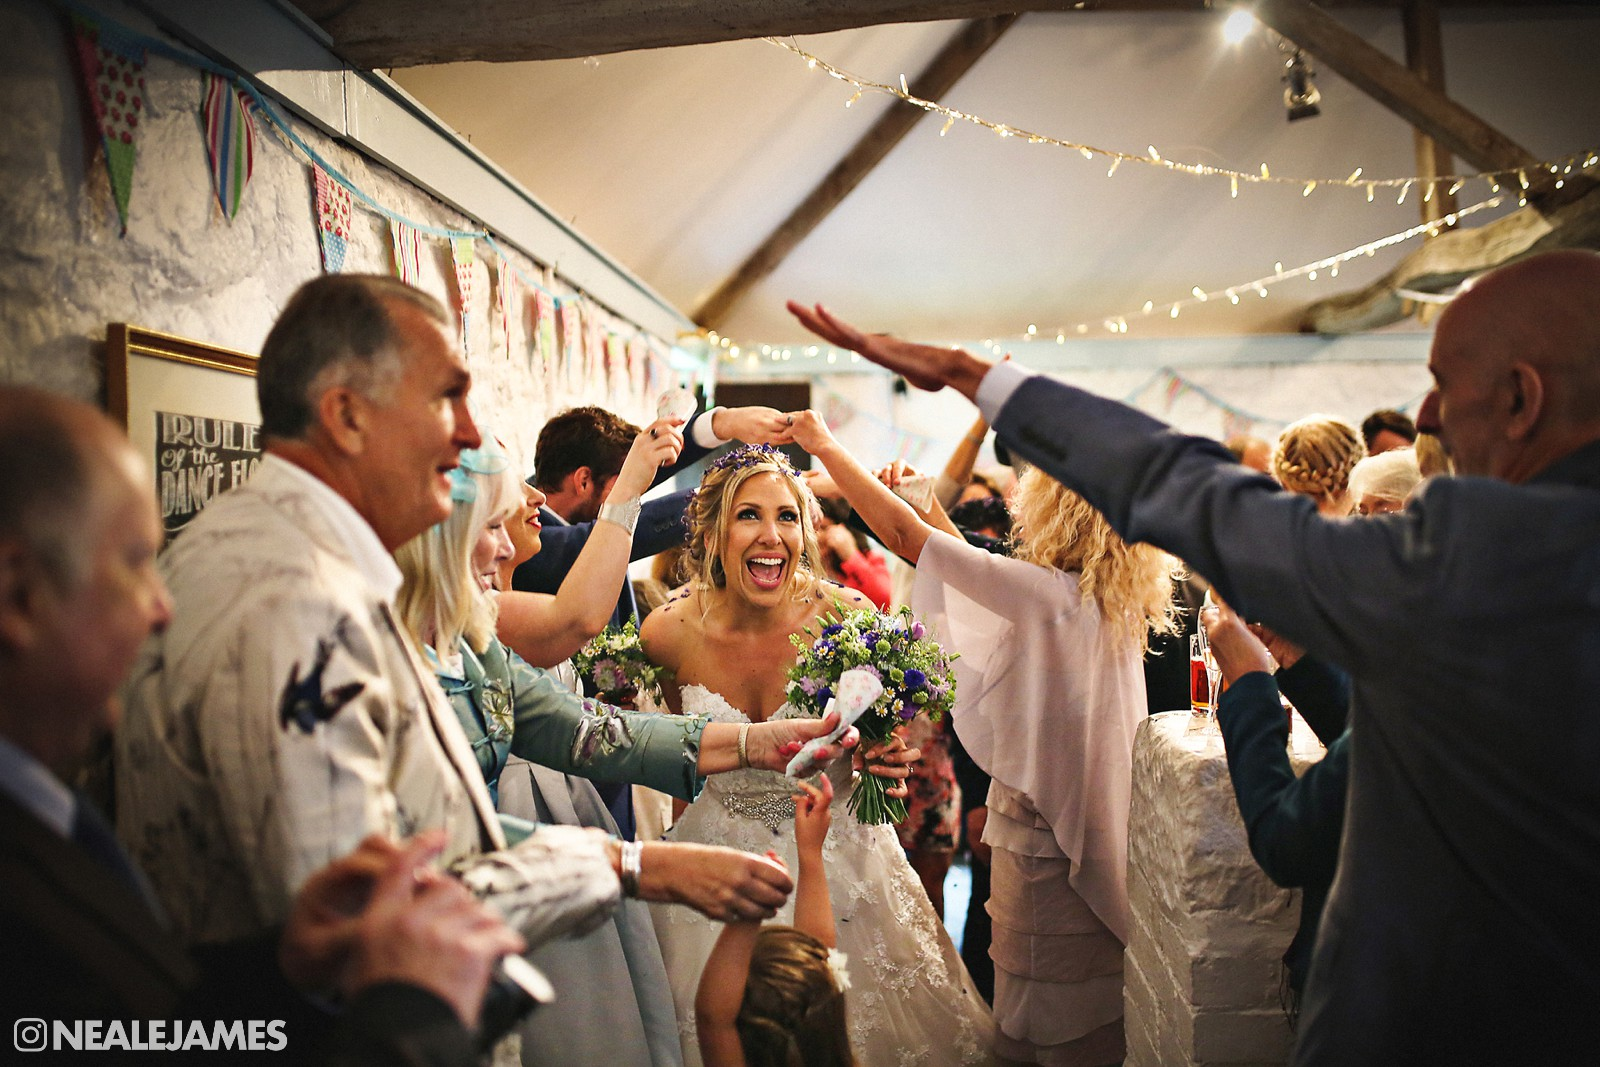 A bride and groom making their way through an indoor confetti run